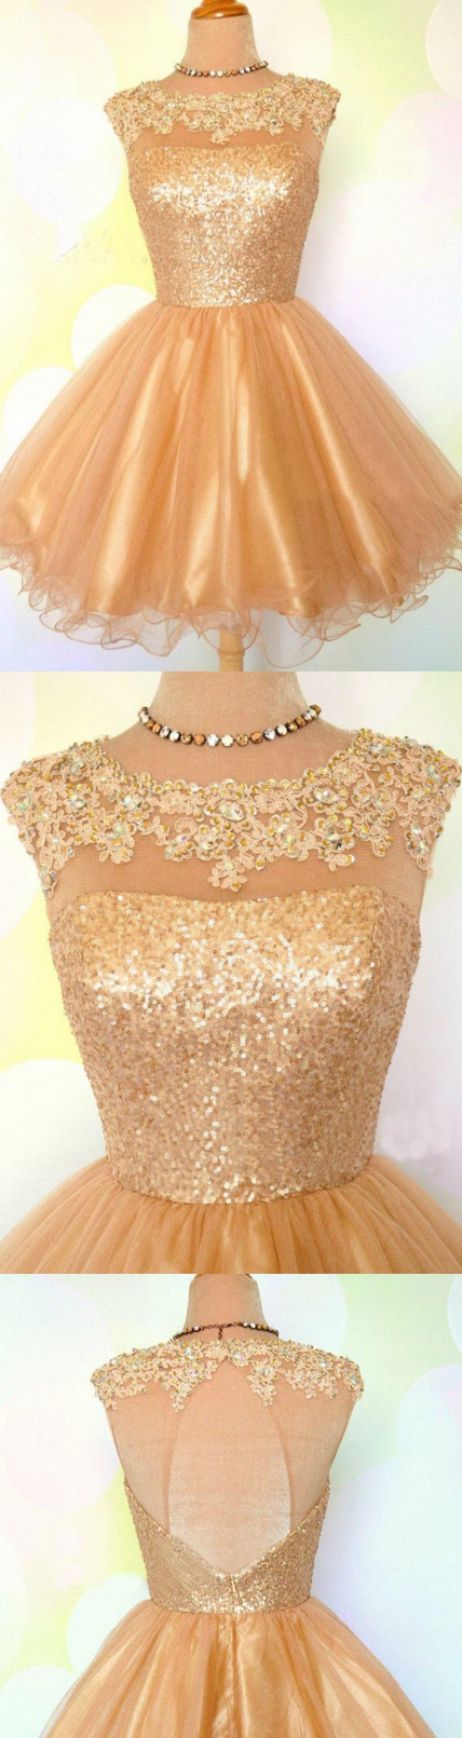 Es hermoso explendodo -  Prom shopping is alive and well on Pinterest. Compare prices for this @ Wrhel.com before you commit to buy. #Prom